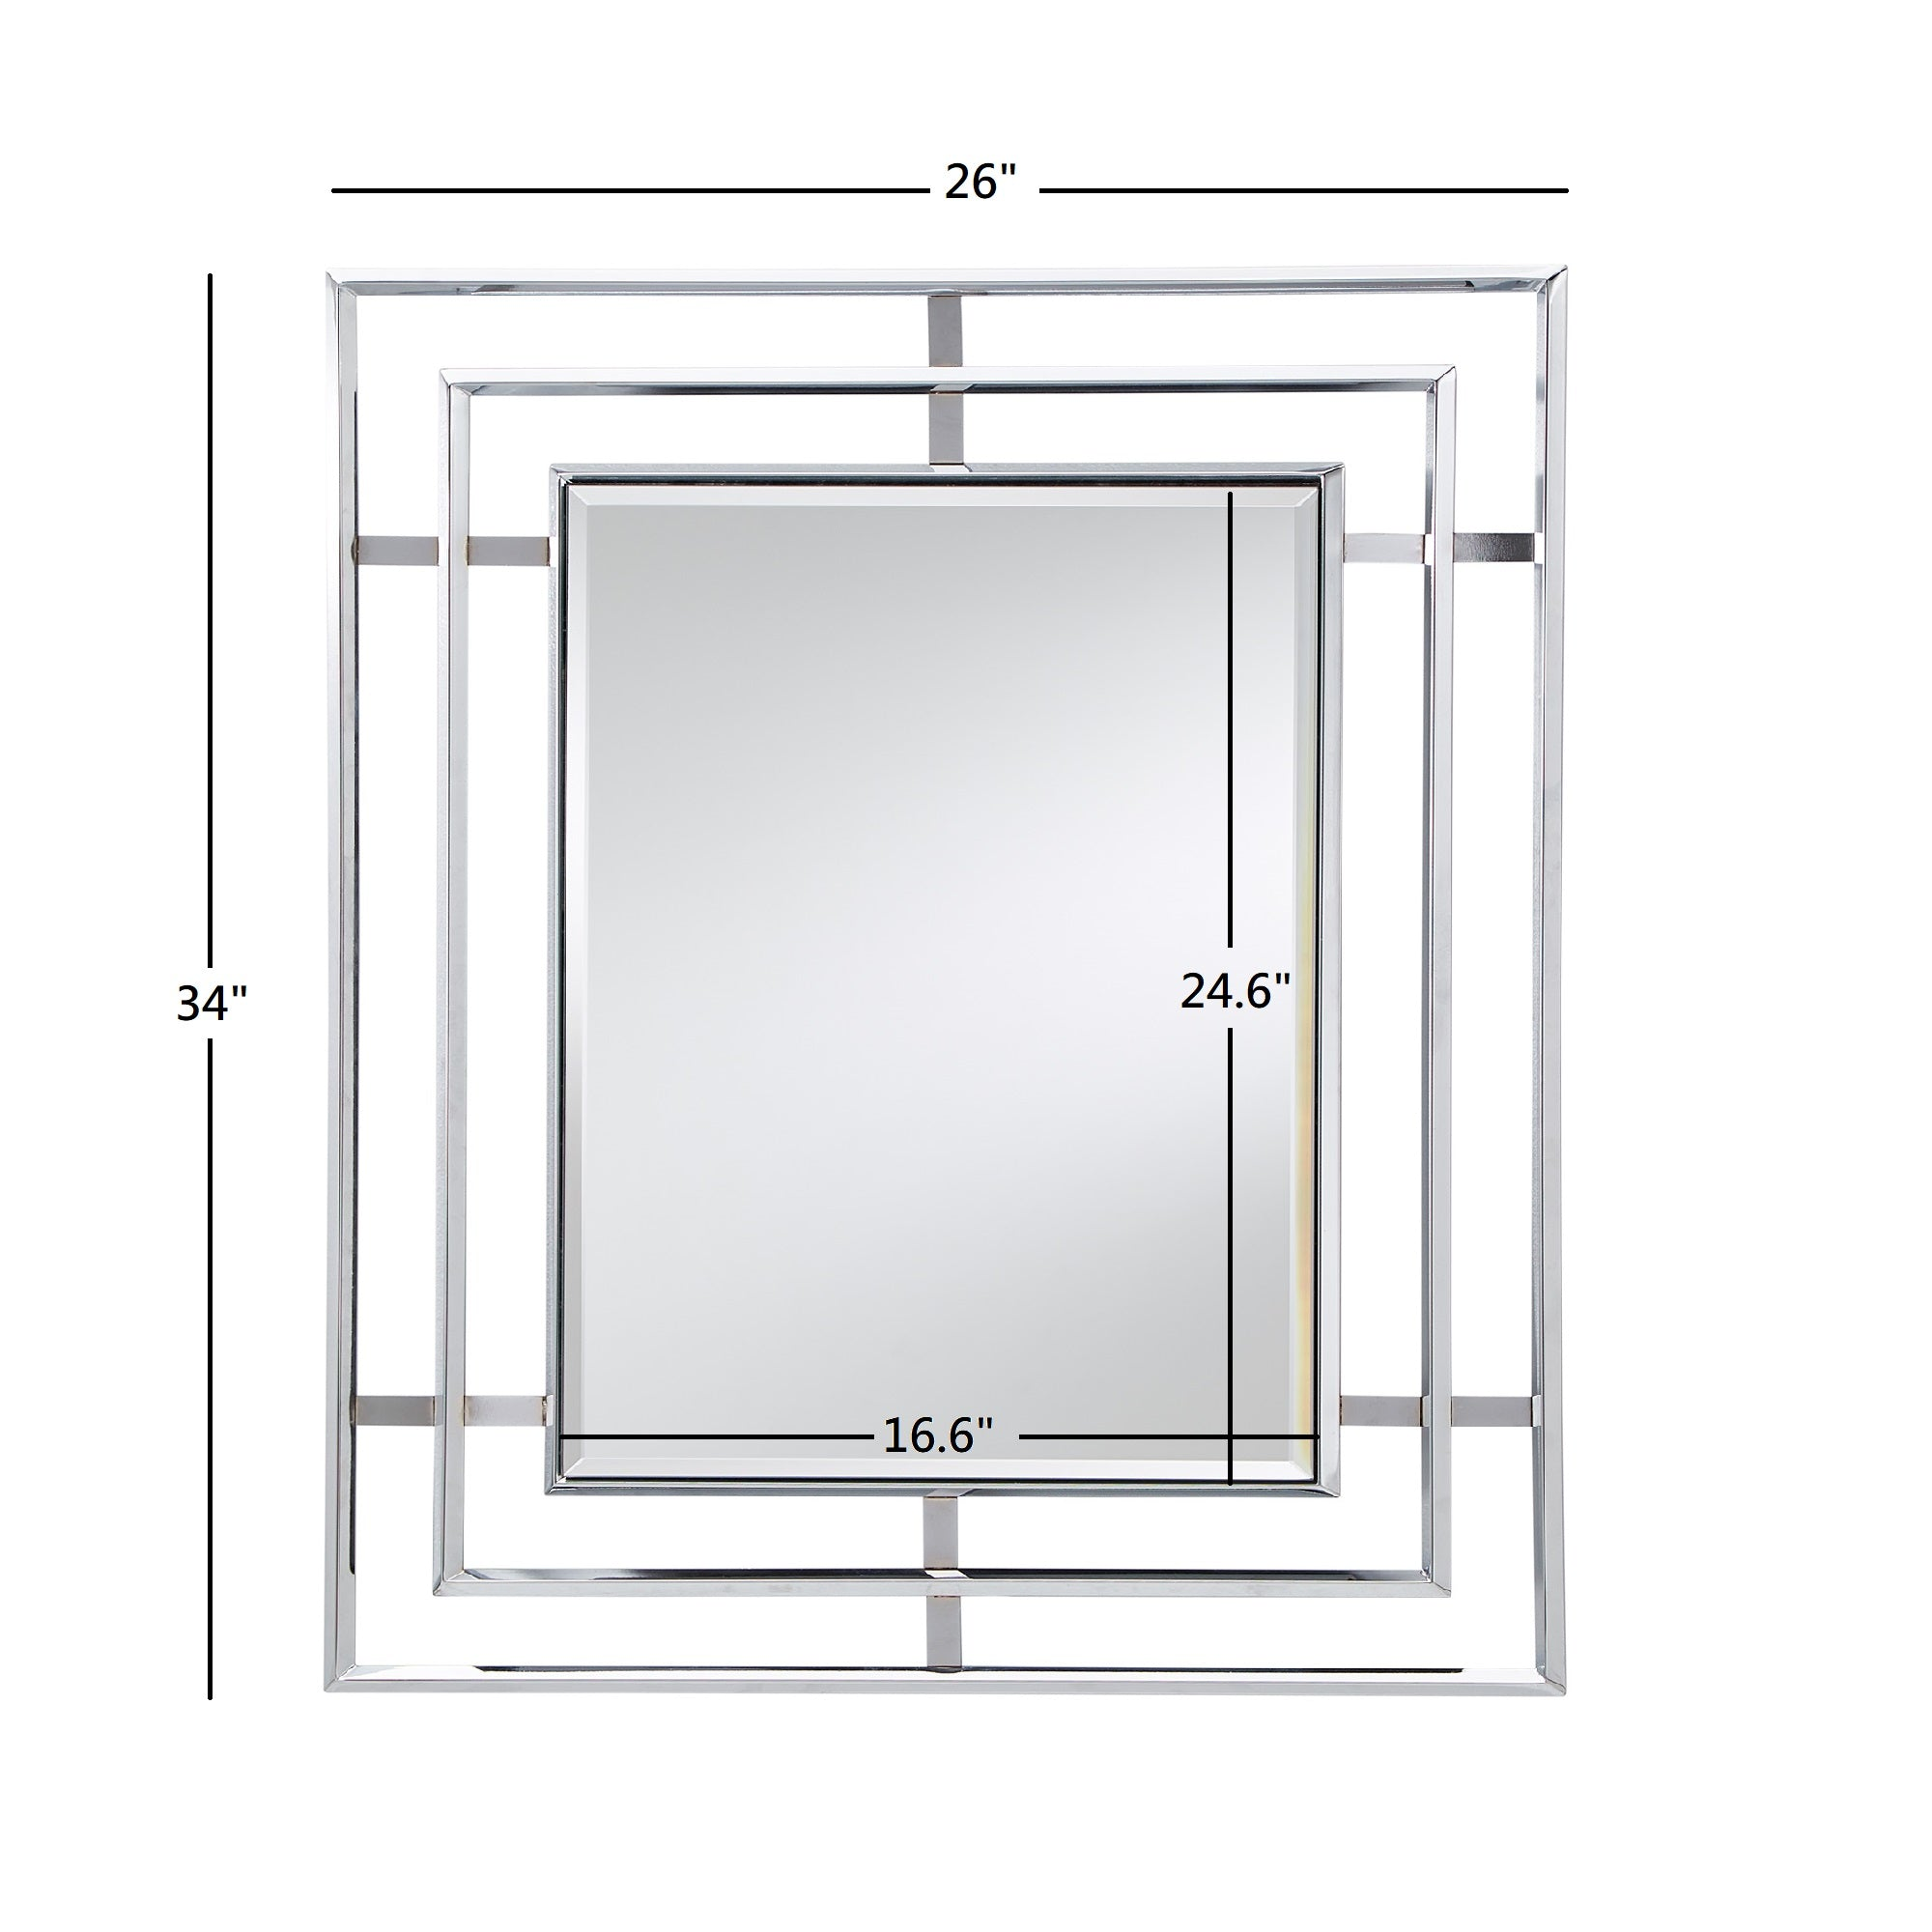 Triple Framed Chrome Rectangular Wall Mirror